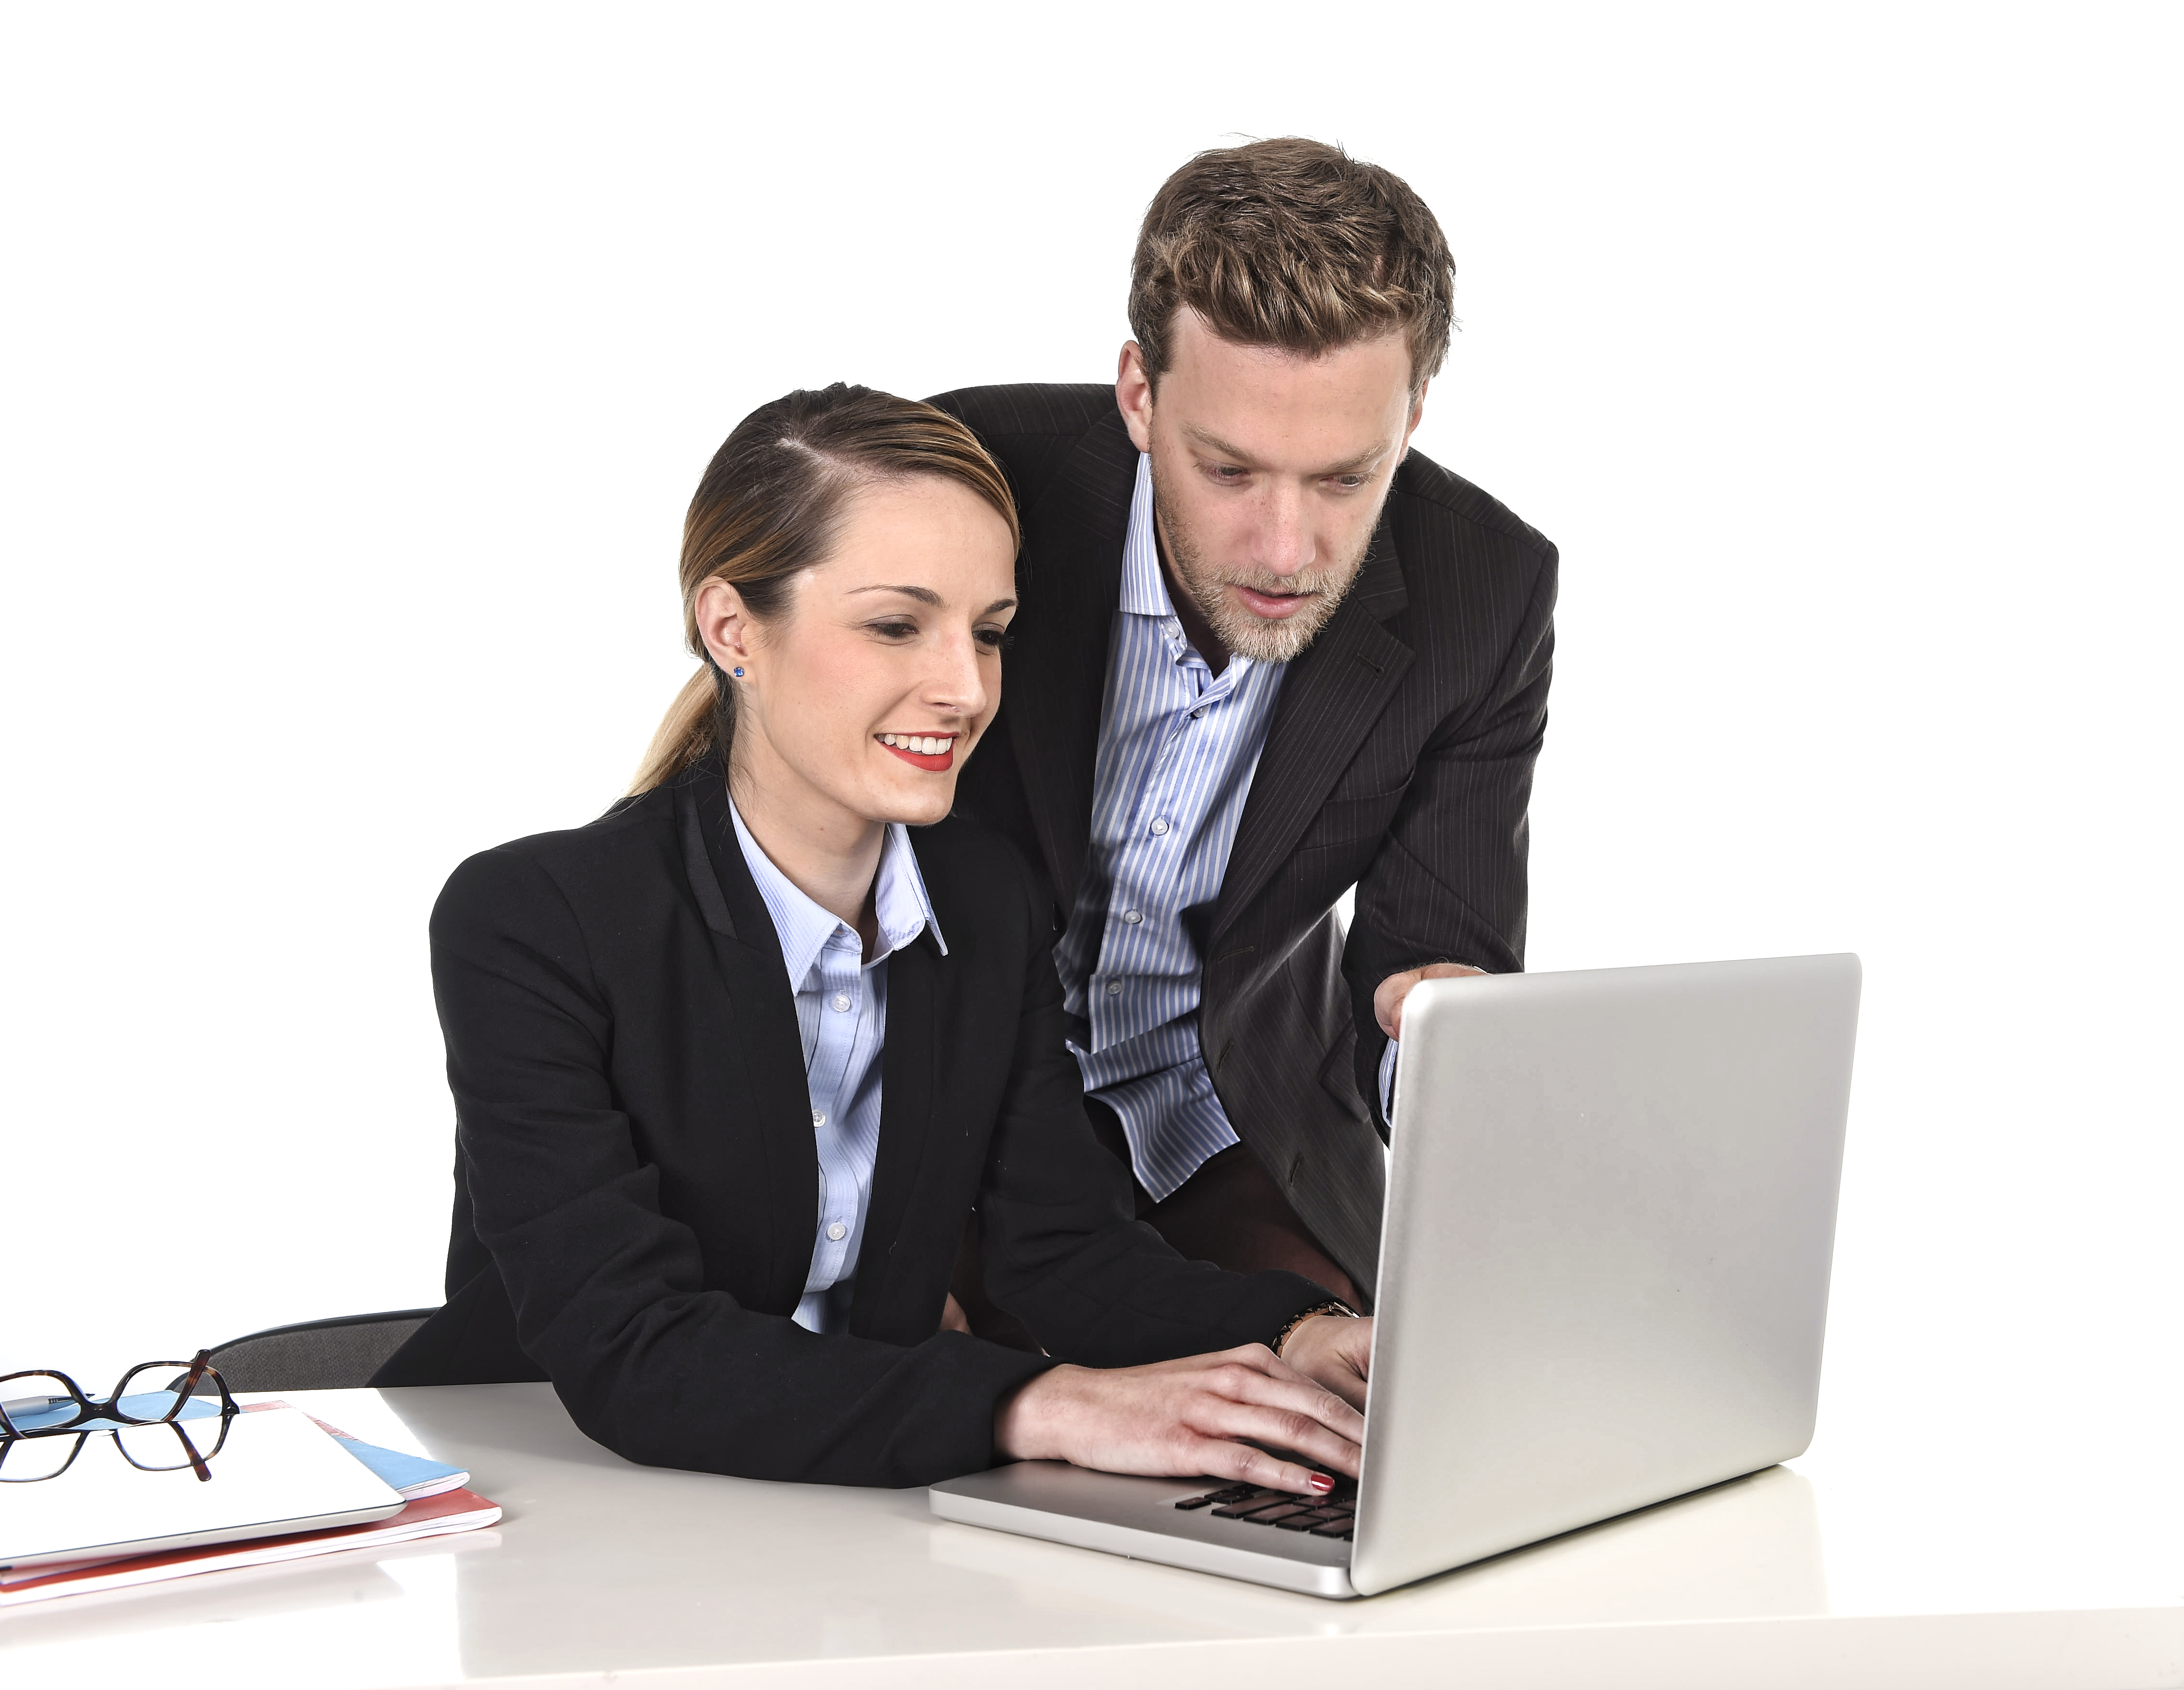 Image of a business woman showing something to a colleague on a computer - Represents that Your town planner can teach you the basics about development approval